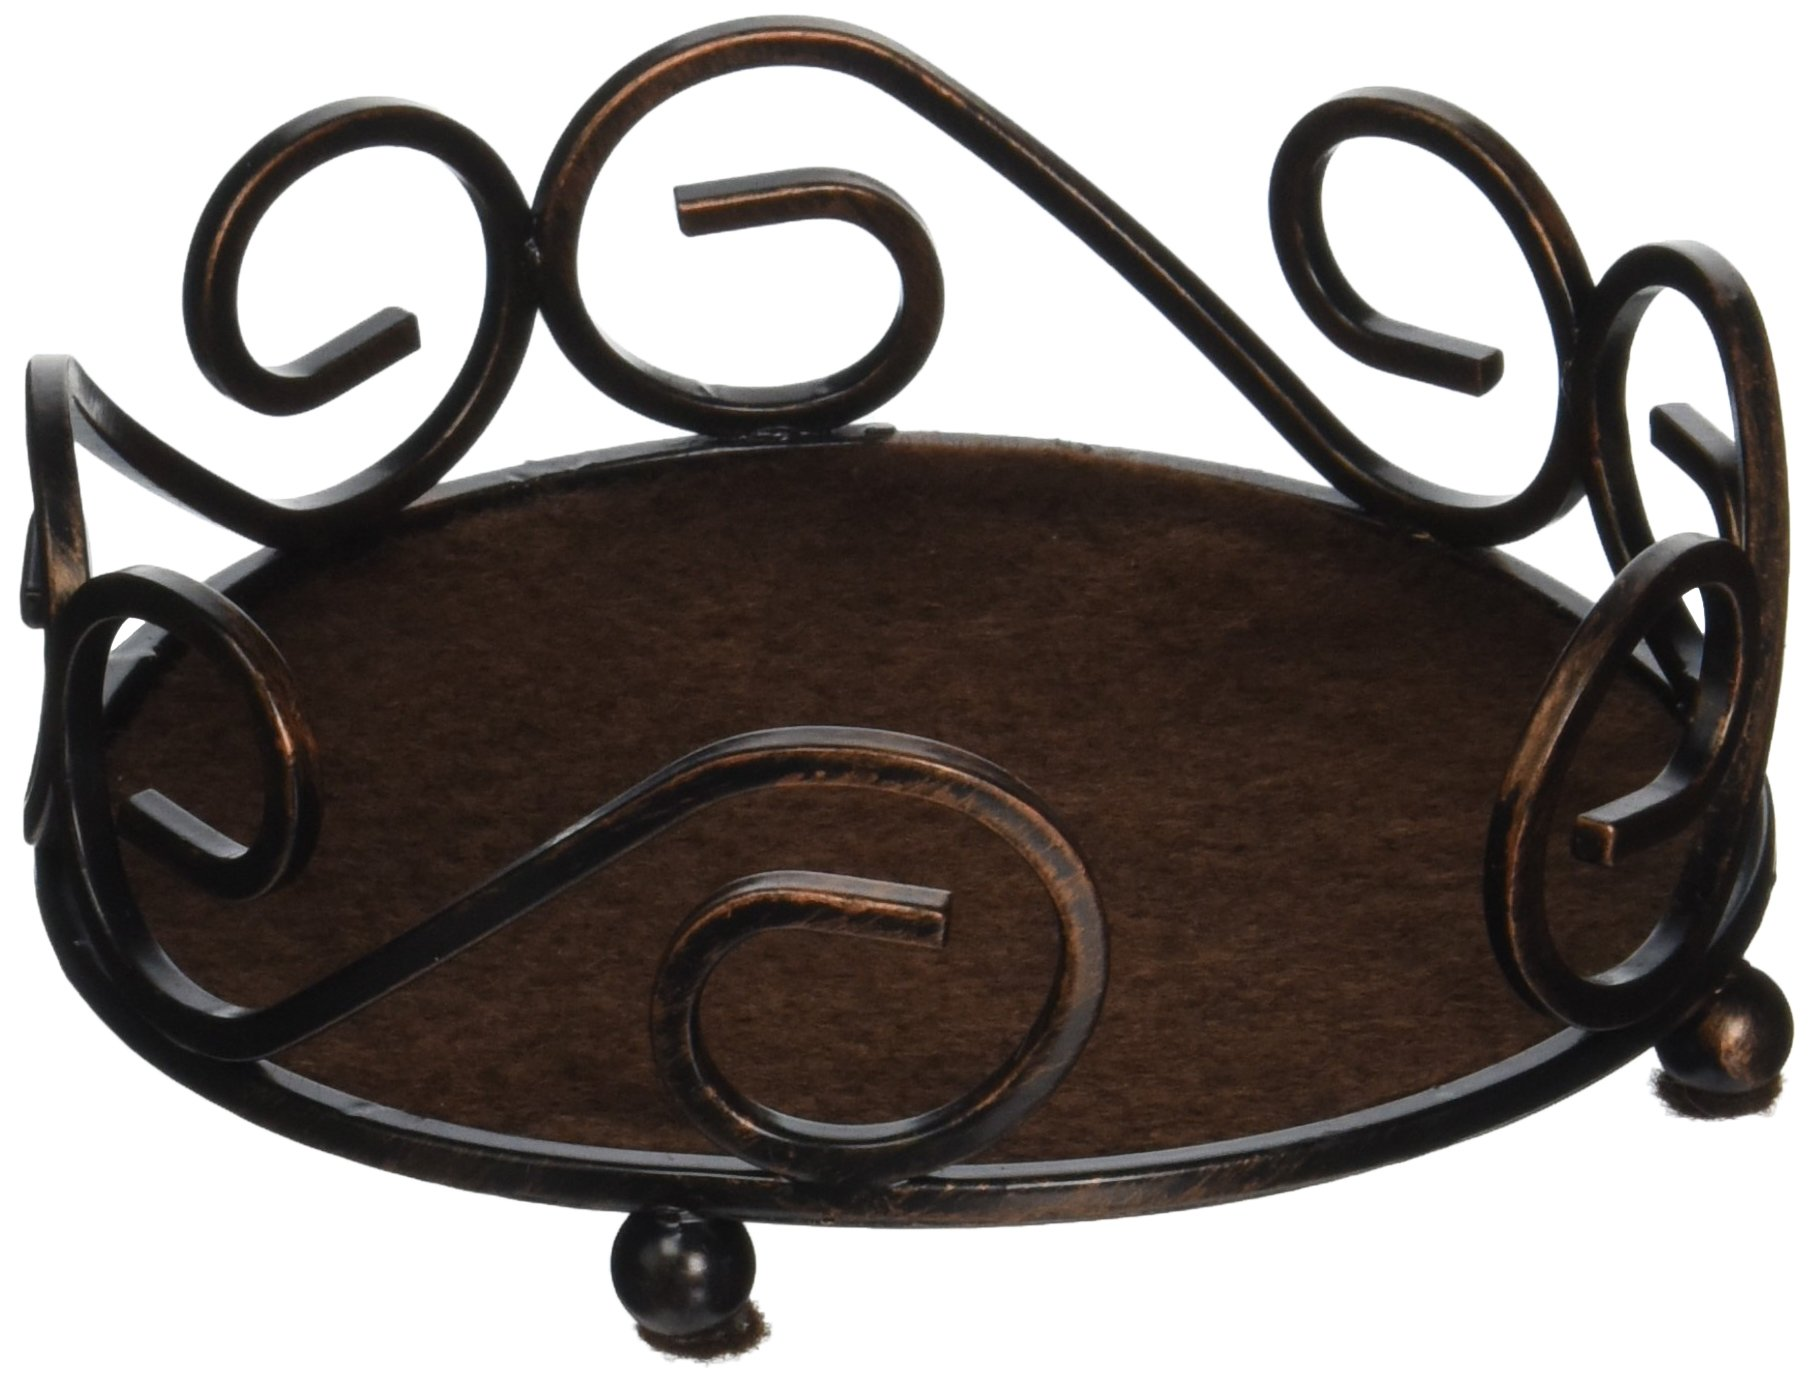 Thirstystone Round Scroll Holder, Bronze by Thirstystone (Image #1)